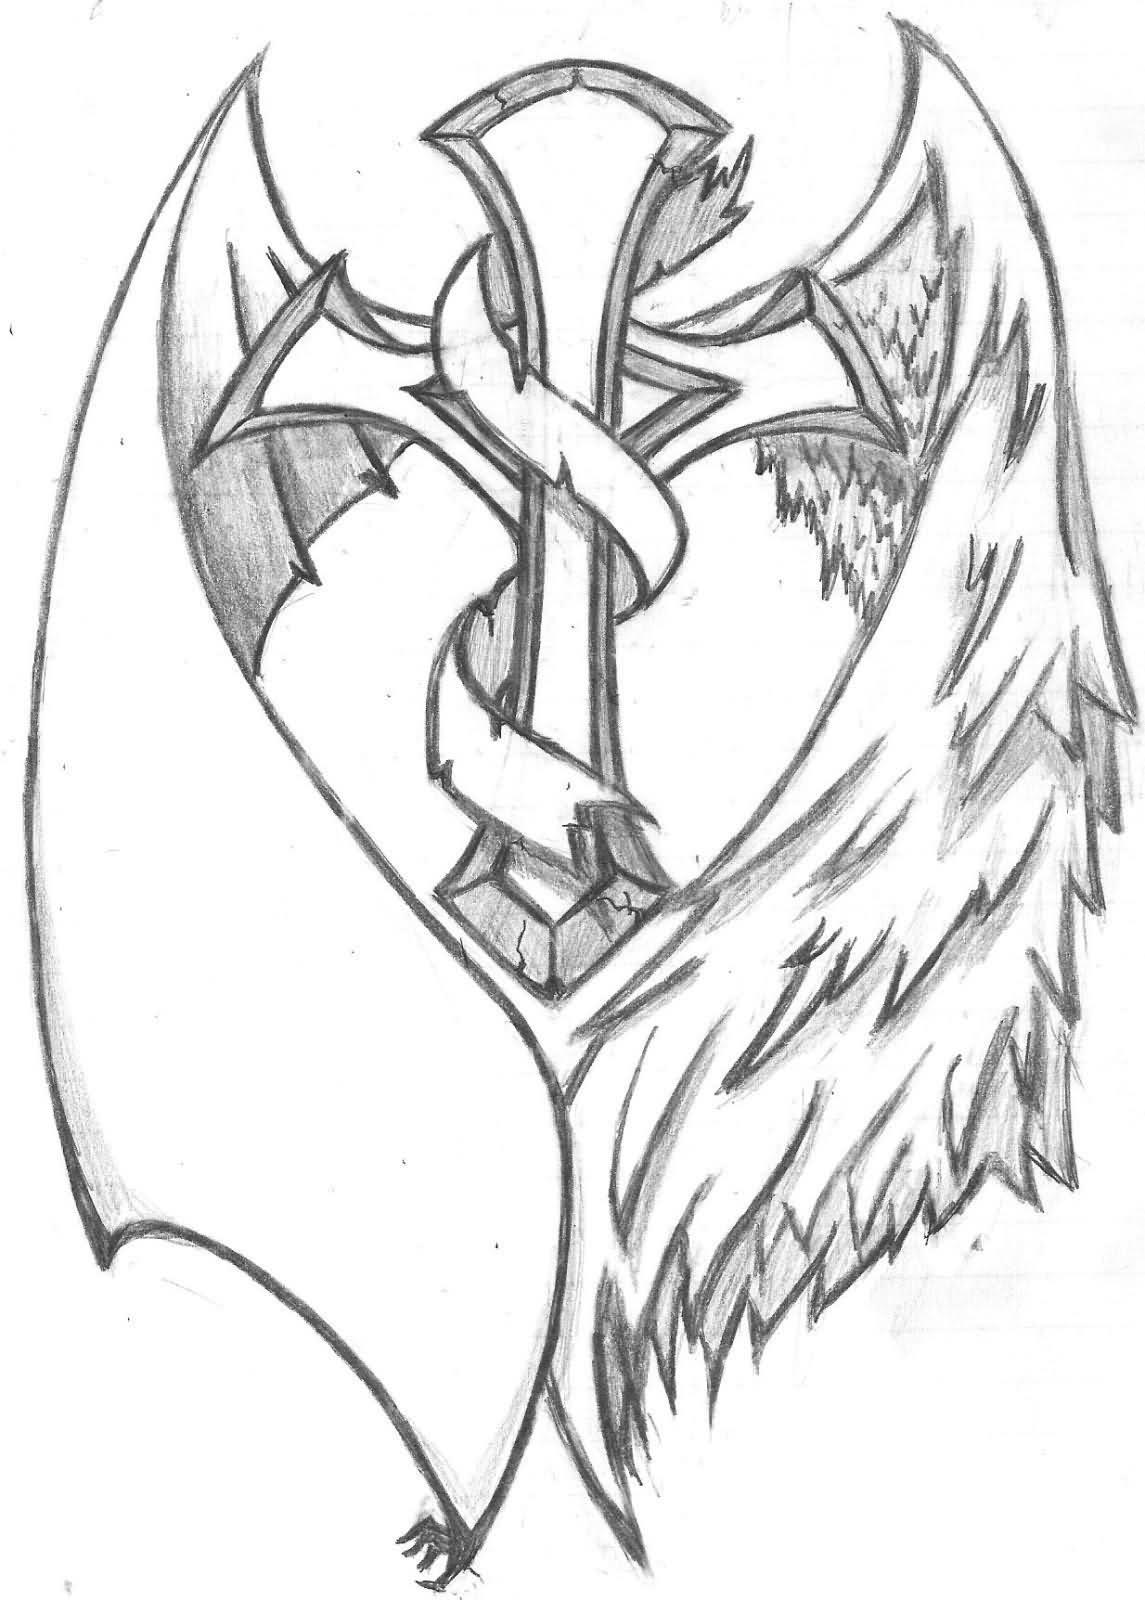 1145x1600 Black And Grey Cross With Wings Tattoo Design By Streadwelljr